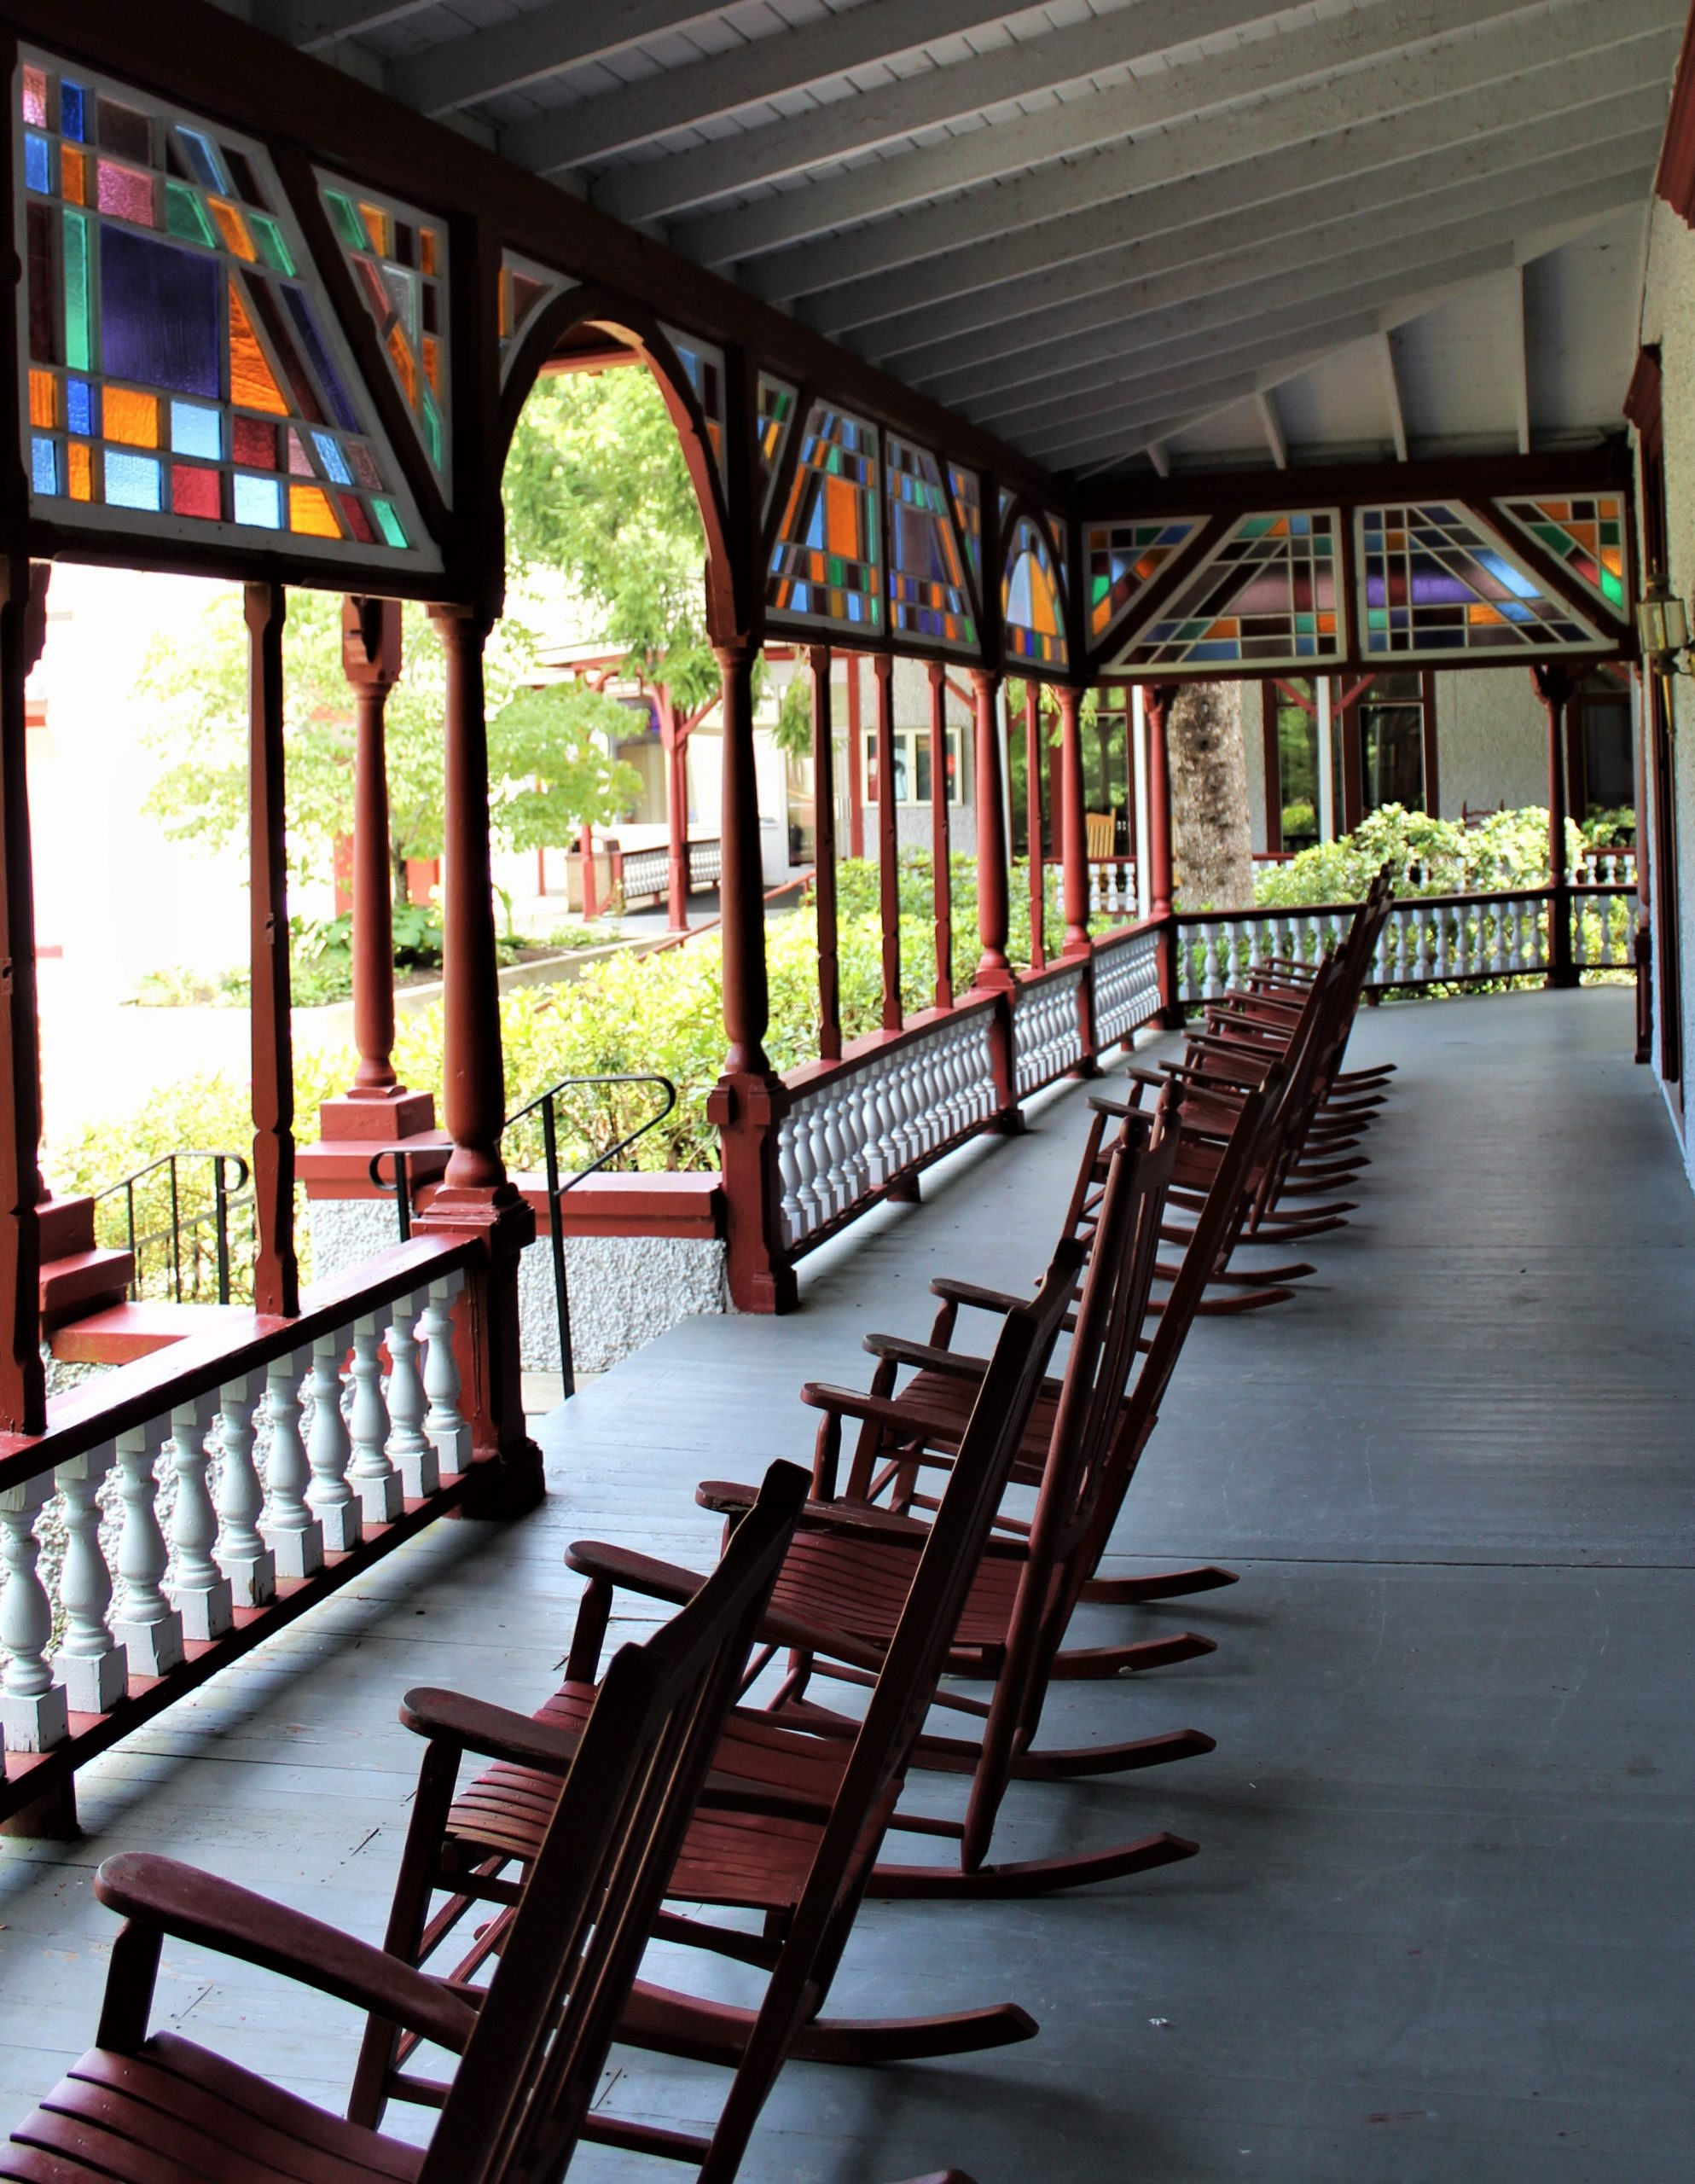 Hotel porch rocking chairs2